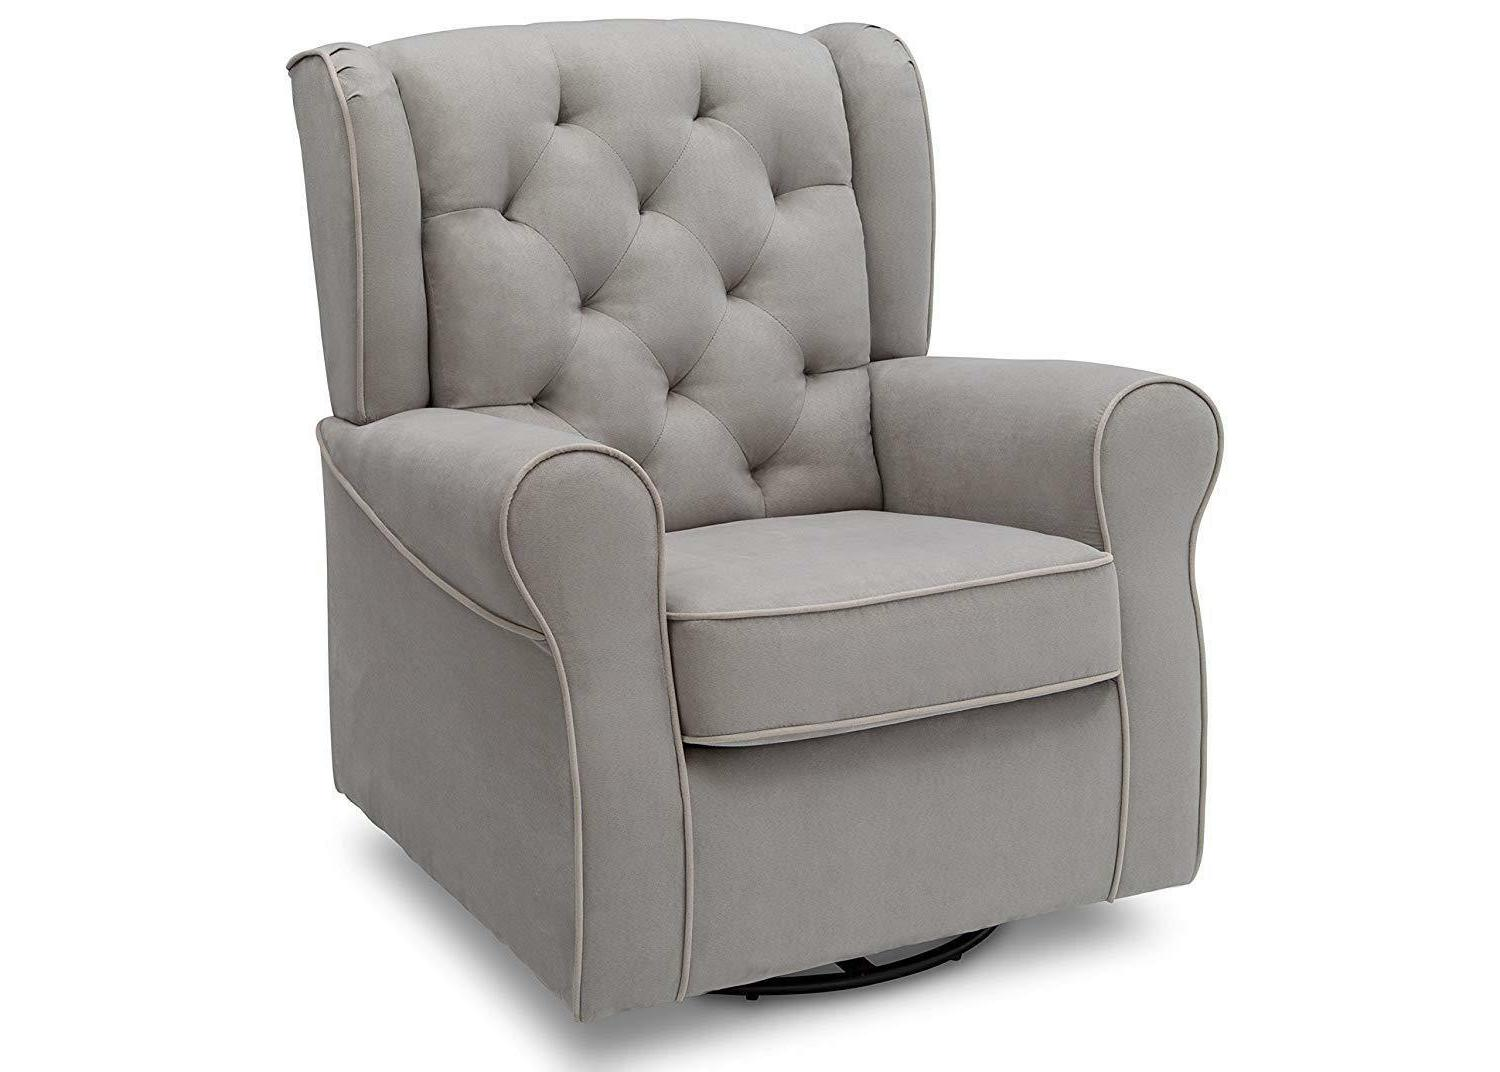 Delta Children Emerson Glider Dove Grey